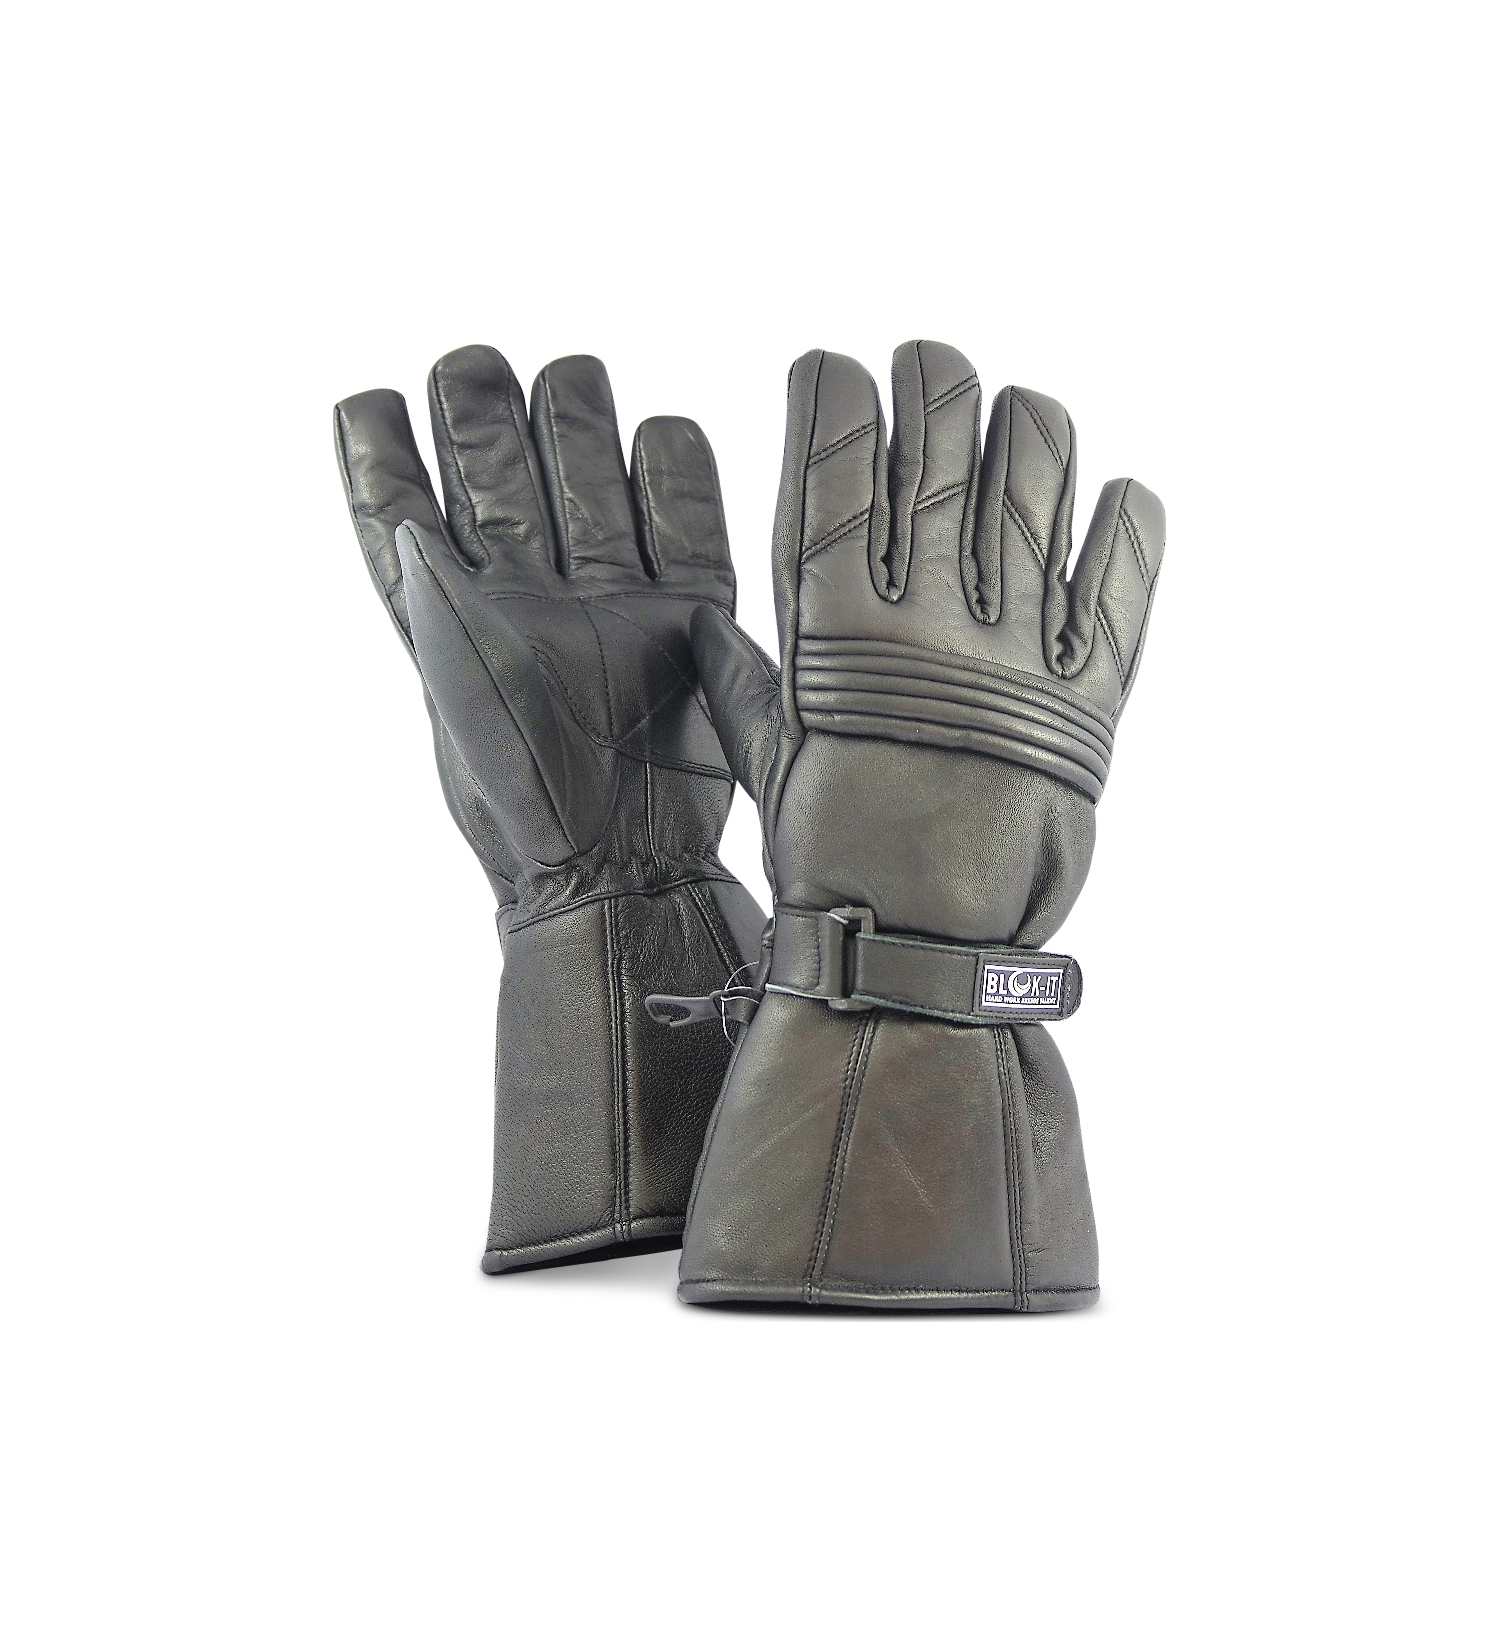 full leather motorcycle gloves by blok it gloves are waterproof